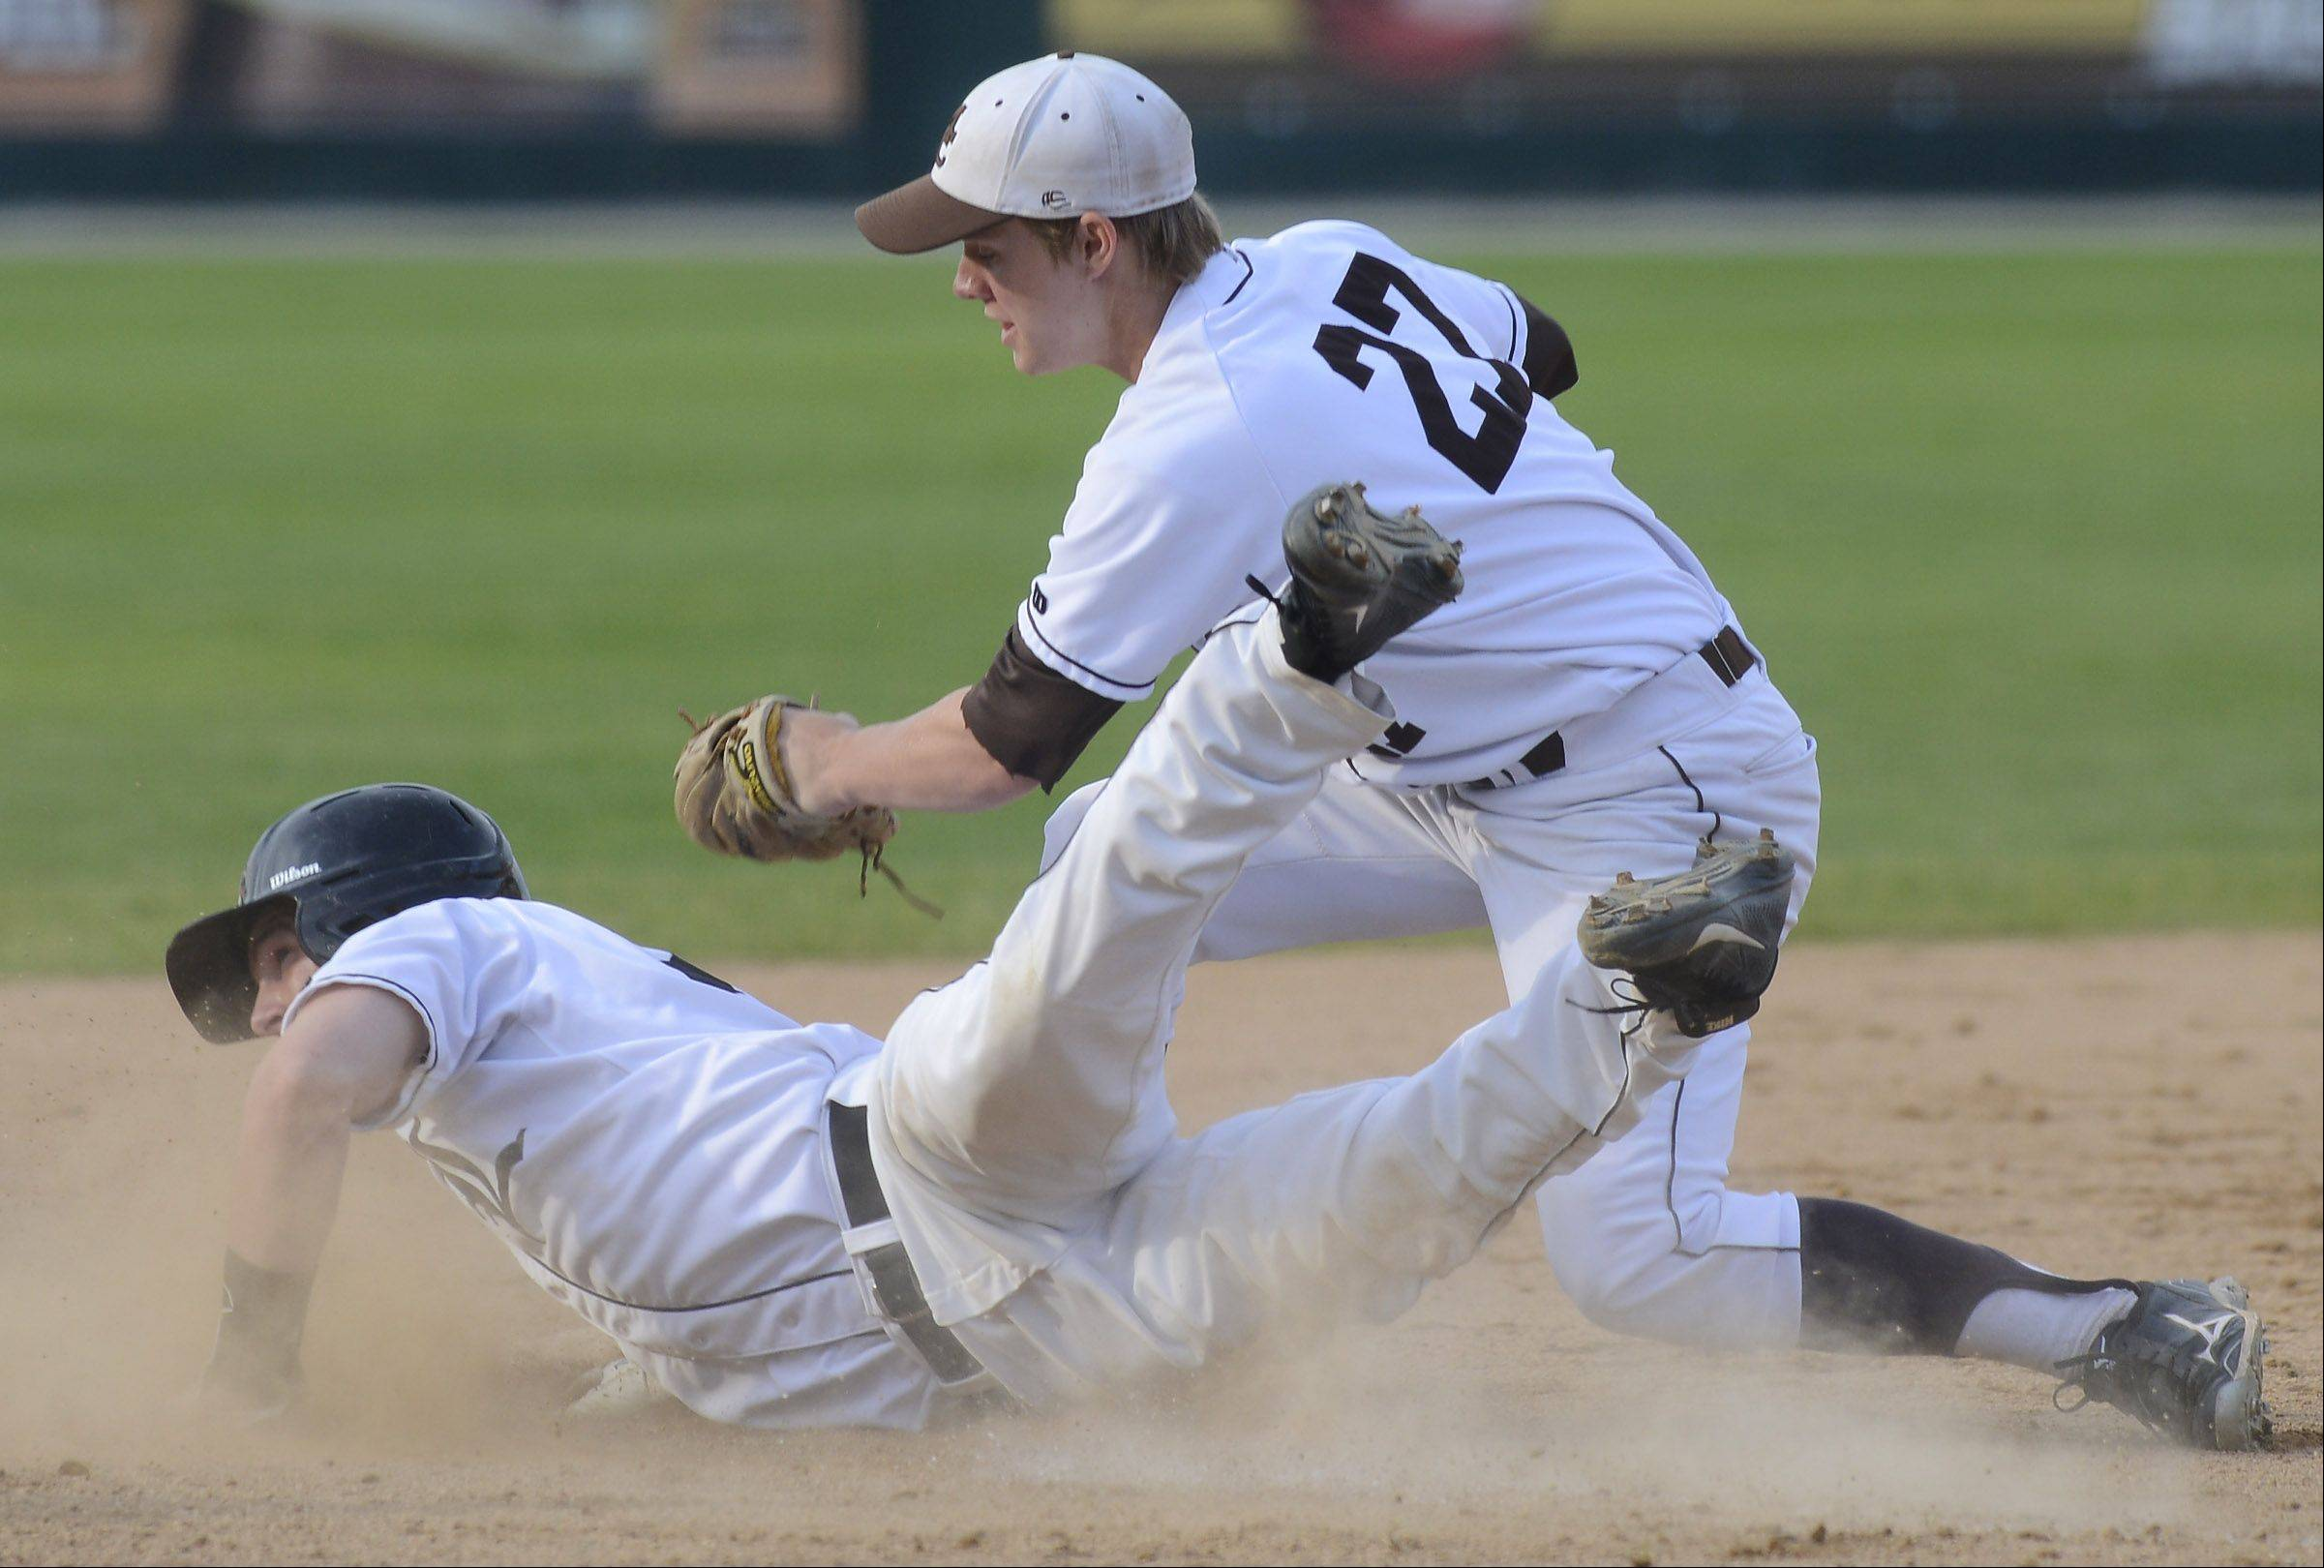 Libertyville's Connor Simpson gets tagged out by Mt. Carmel third baseman Beau Filkins after wandering too far off the bag on a missed squeeze attempt in the fourth inning of the Class 4A state baseball championship game at Silver Cross Field in Joliet Saturday.